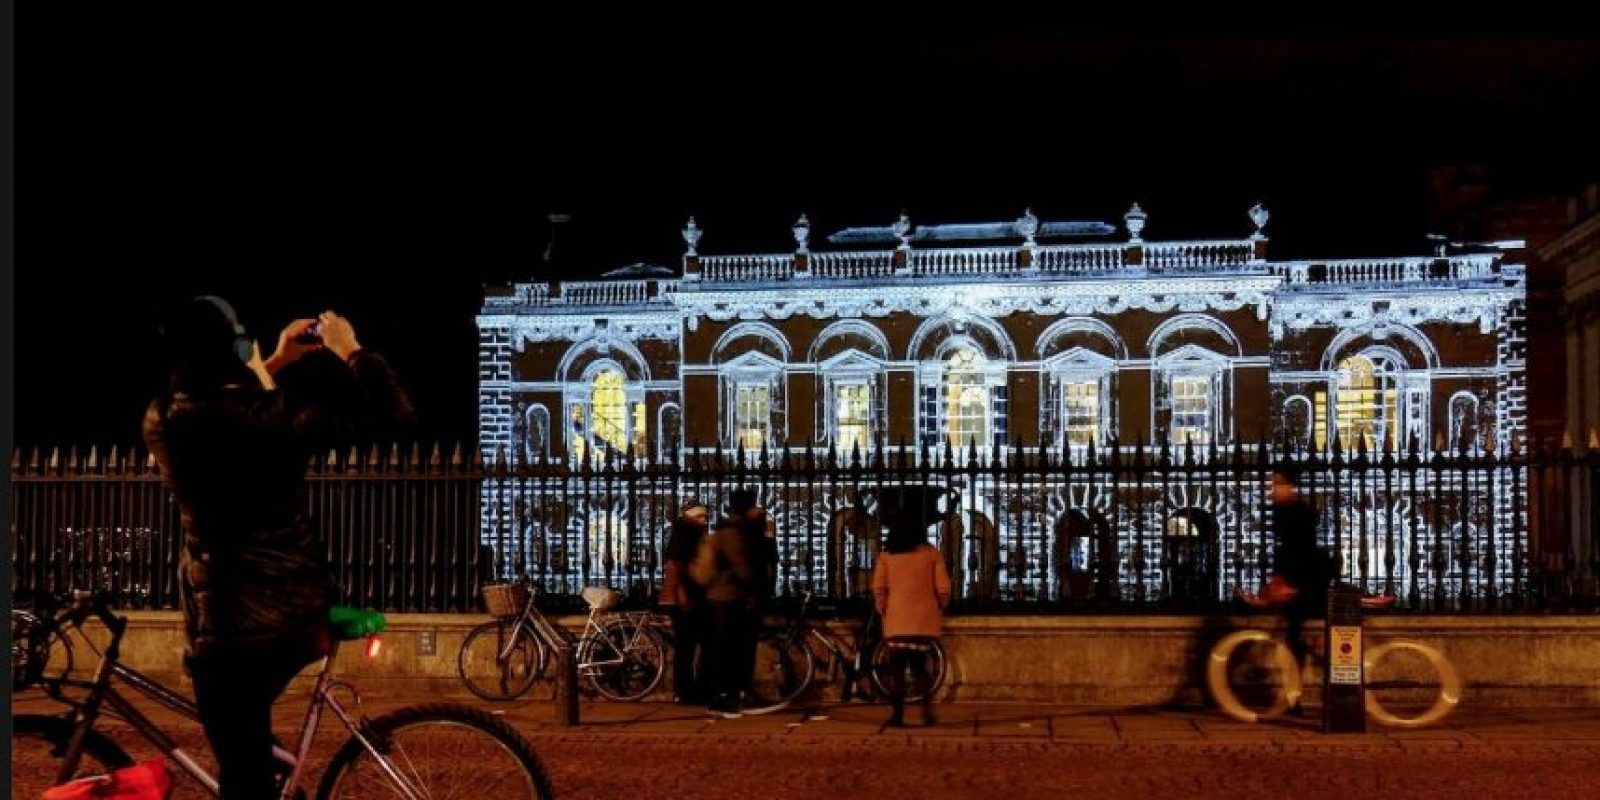 Fundada en 1209, es la universidad de habla inglesa más antigua. Foto: facebook.com/cambridge.university/